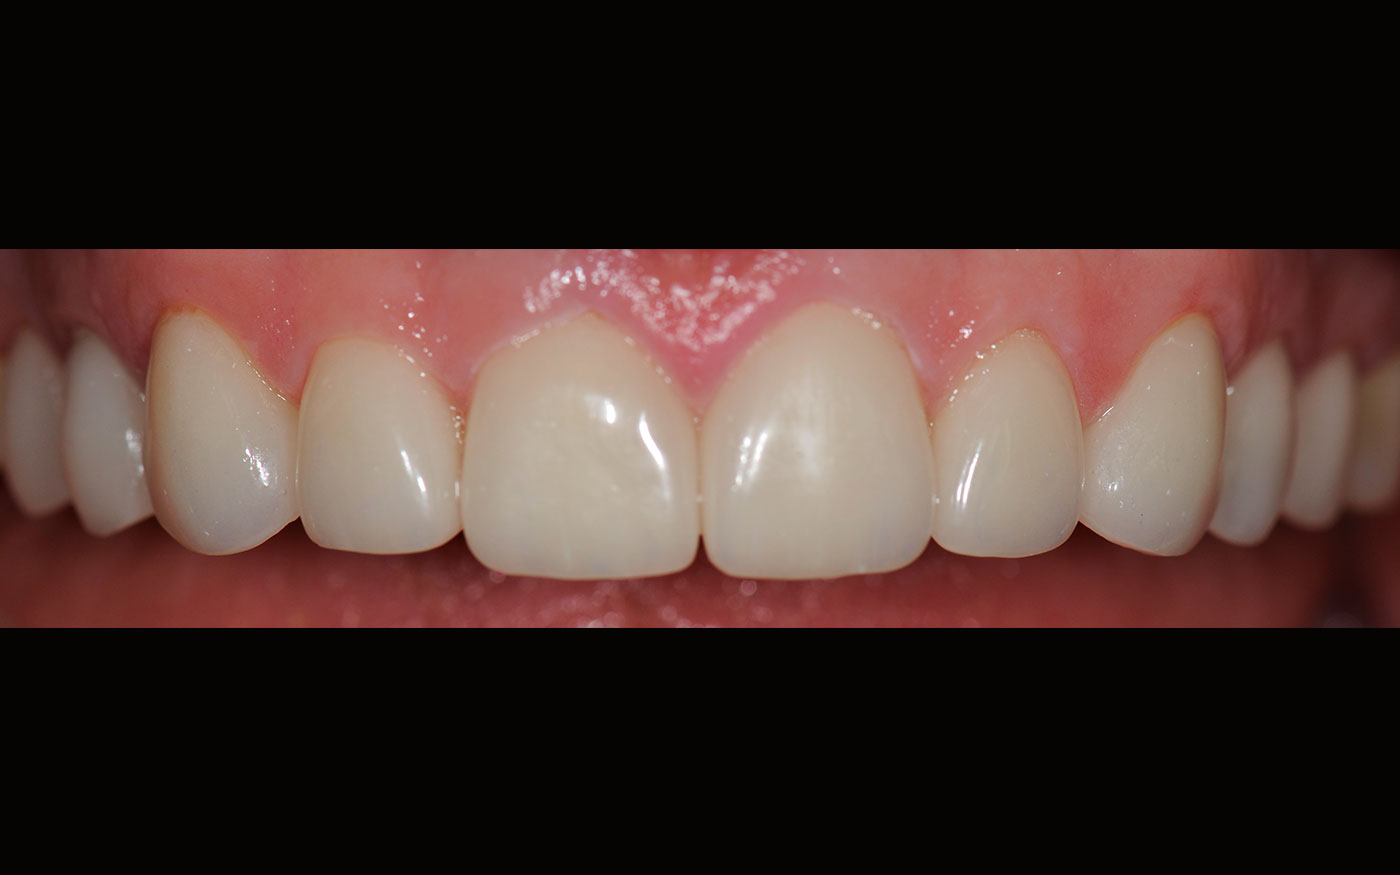 Crooked, discoloured teeth replaced with 10 perfect porcelain veneers